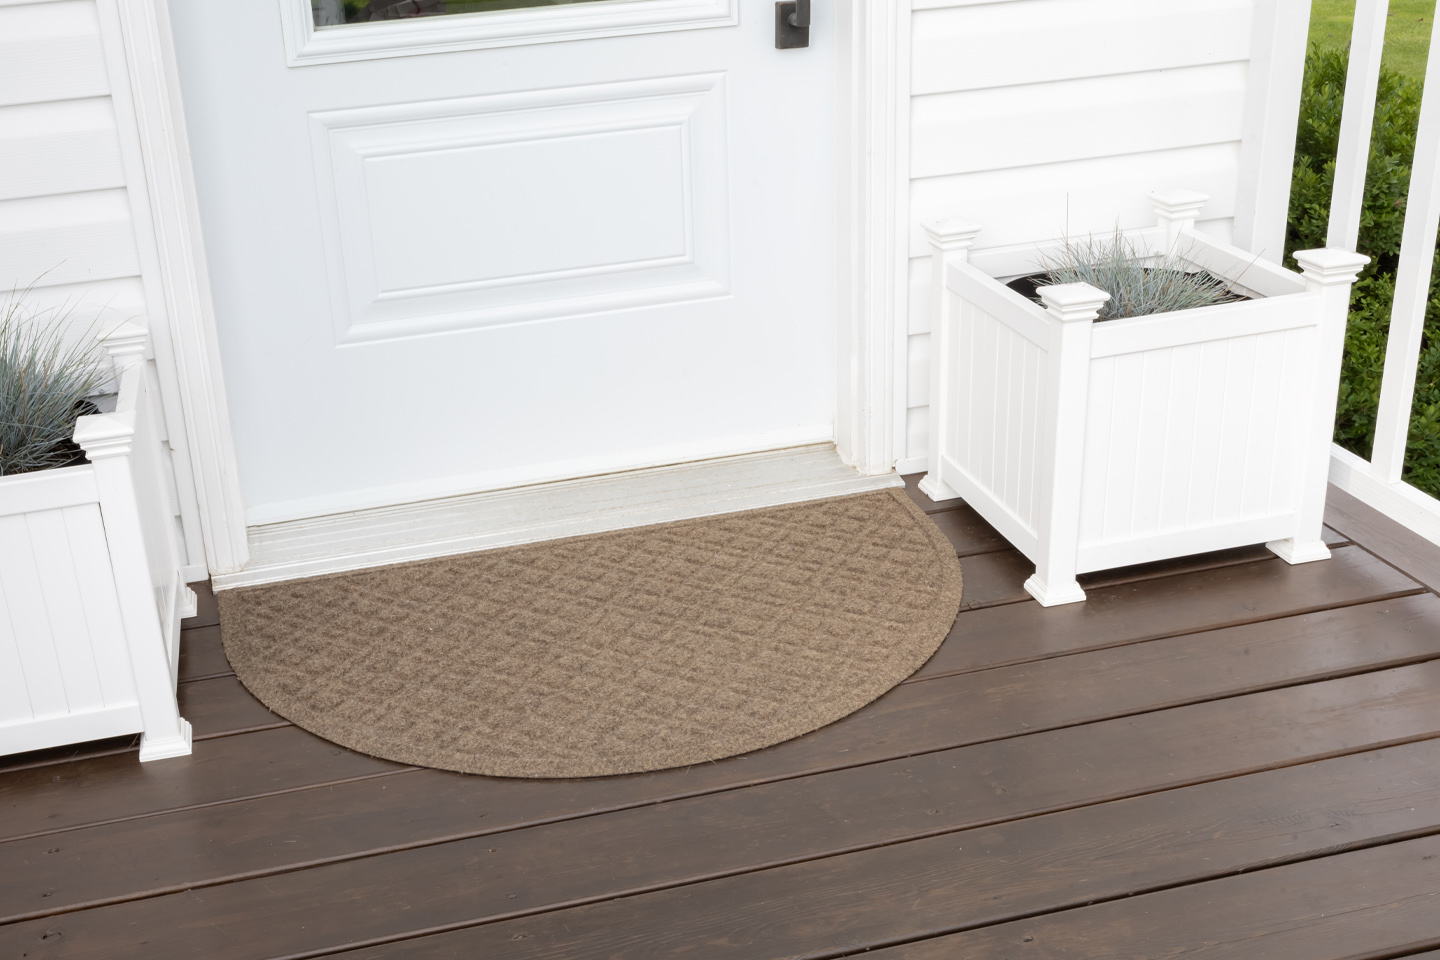 I really just wanted a doormat that would last more than a month, would look presentable, and wouldn't make my porch decor look tacky. I found all that and more with this type of doormat and I can't believe how much satisfaction such a little thing can bring me when it just does what it's supposed to do. :) Here's my LL Bean Waterhog Doormat Review!